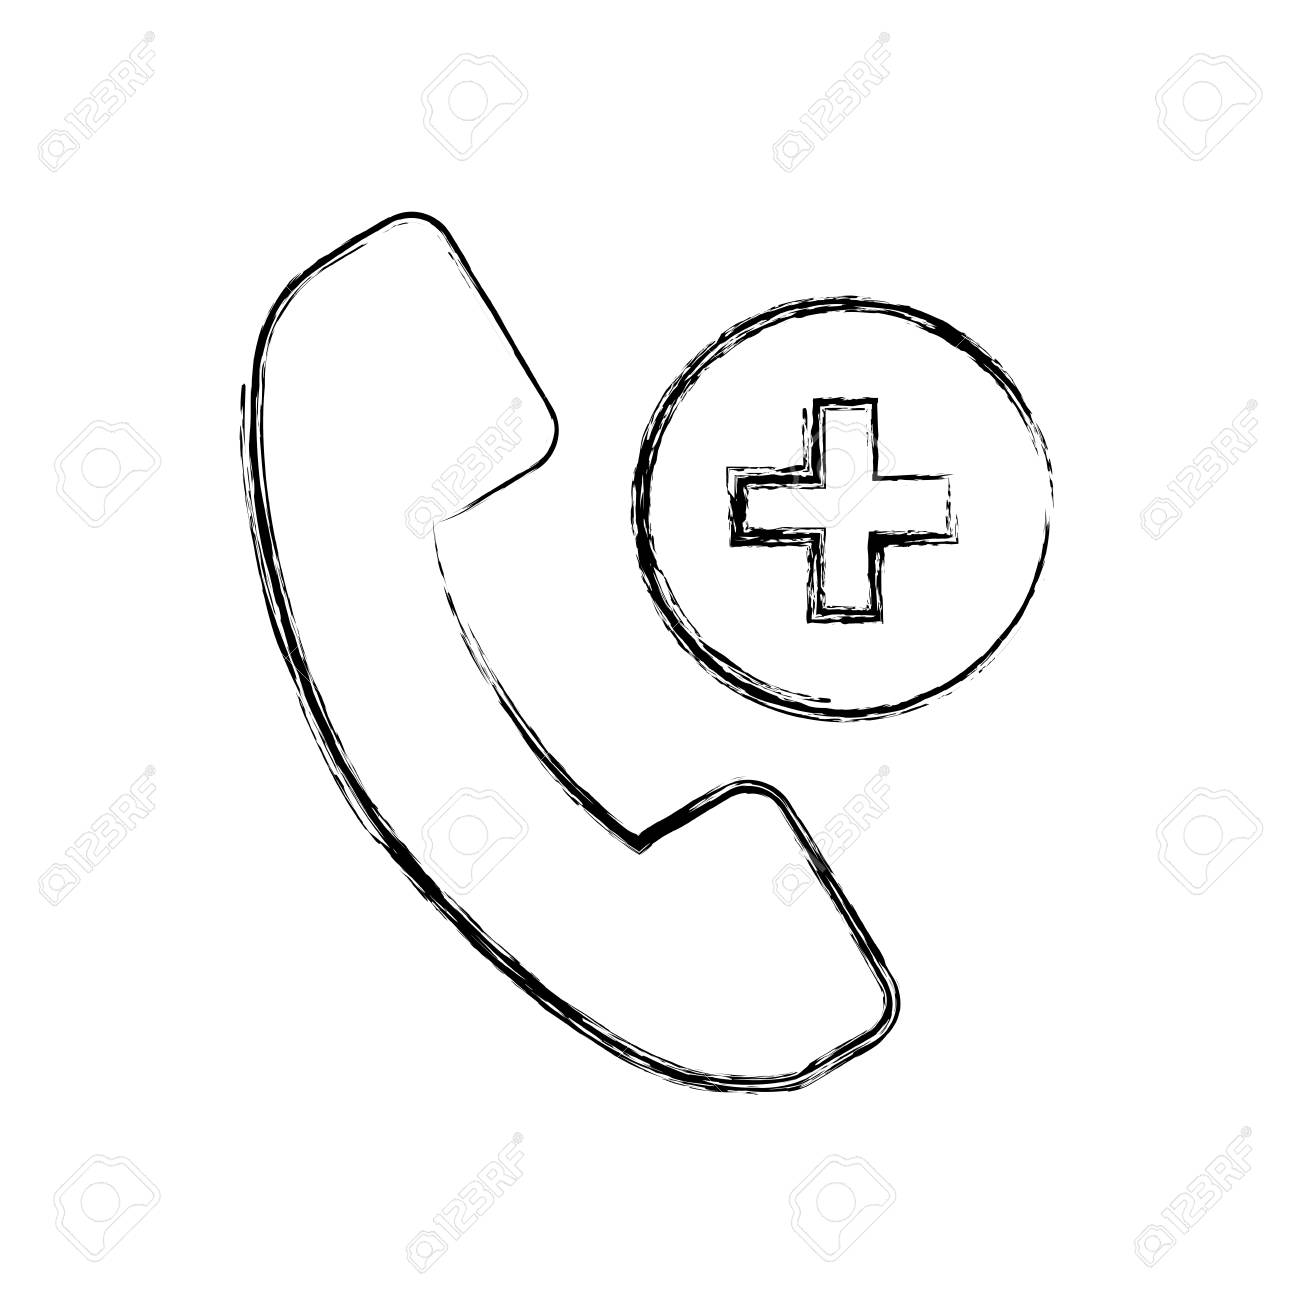 1300x1300 Sketch Draw Emergency Phone Call Cartoon Vector Graphic Design